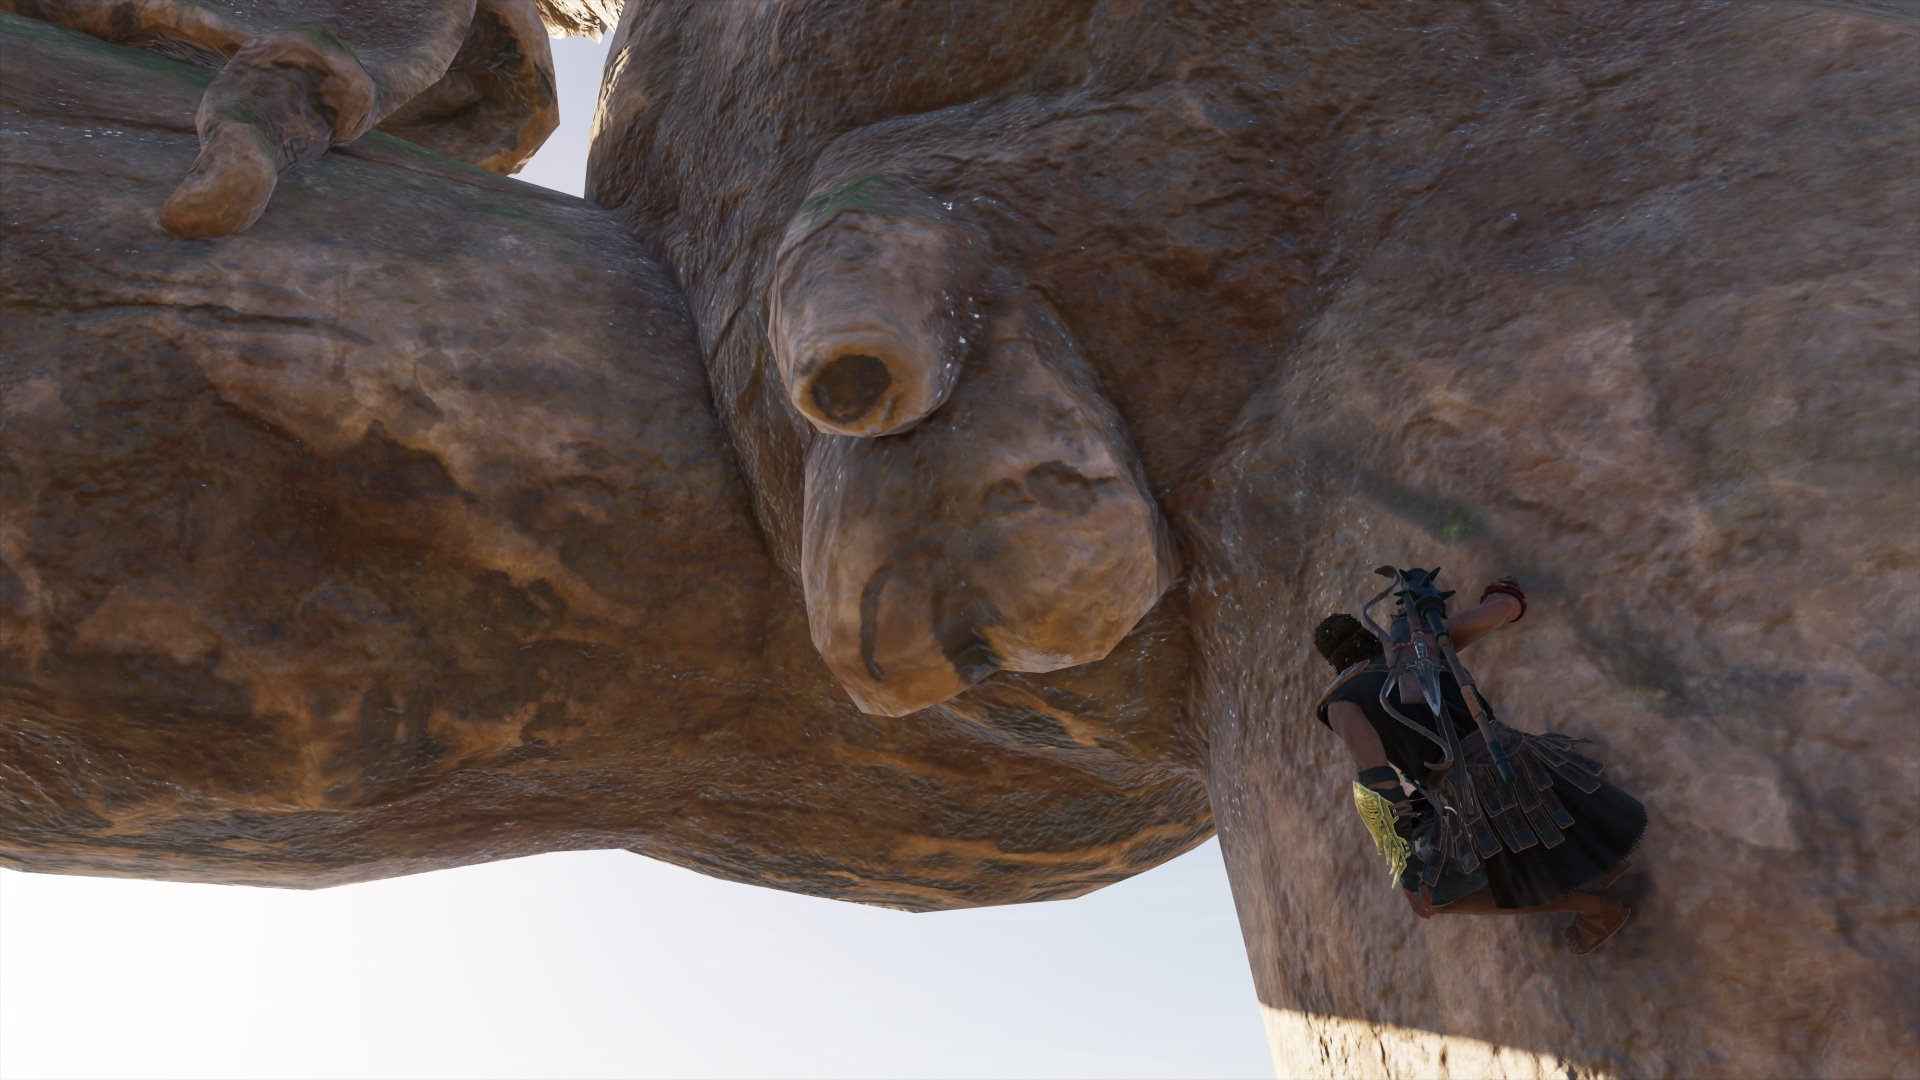 Erklimme Den Penis Der Gotterstatue In Assassin S Creed Odyssey